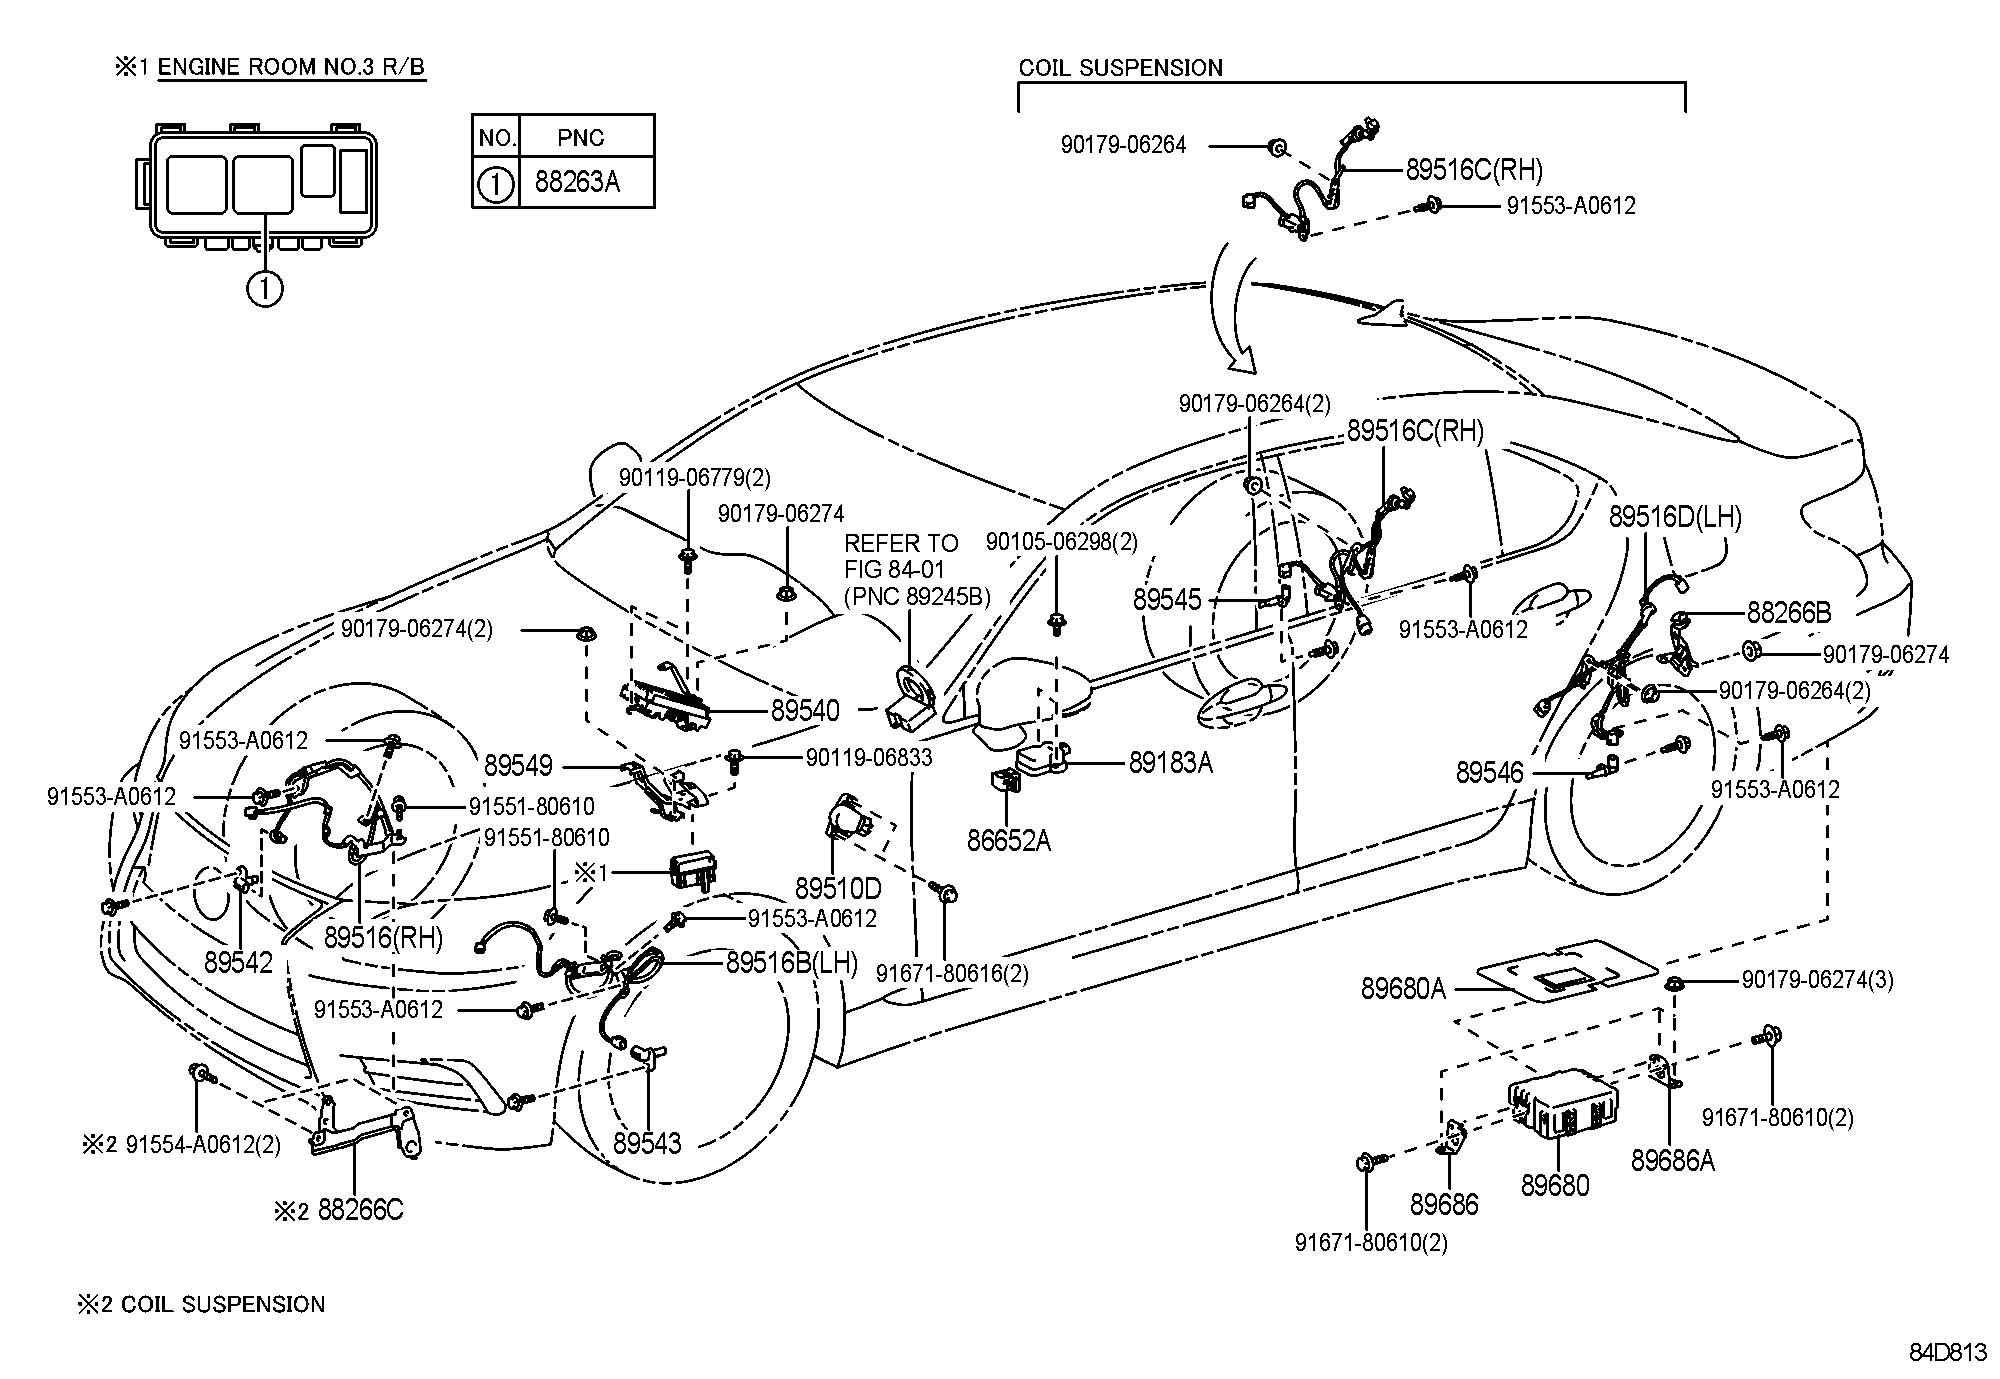 1999 Lexus Gs300 Parts Diagram